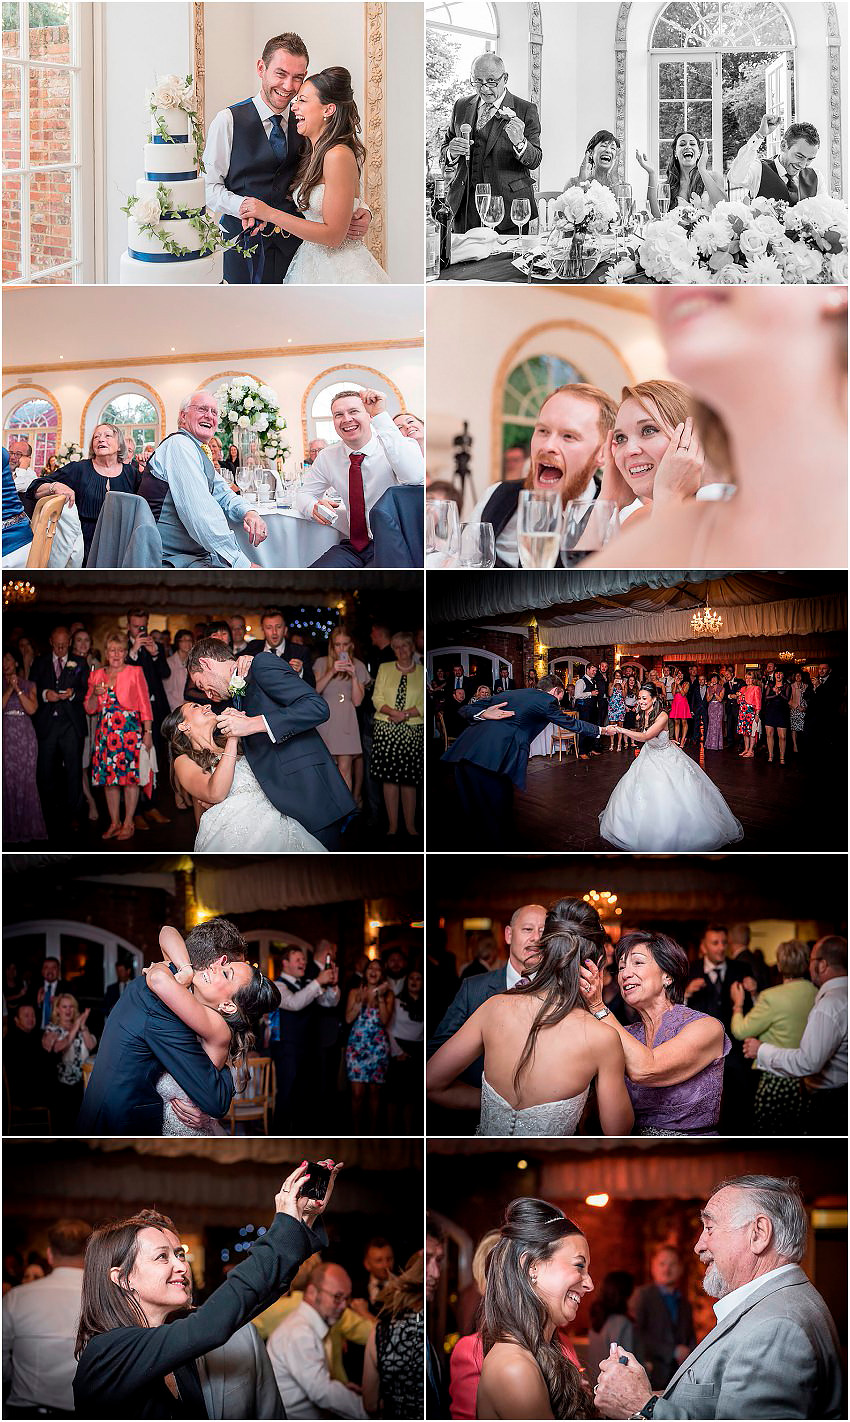 Fun at a Northbrook Park wedding